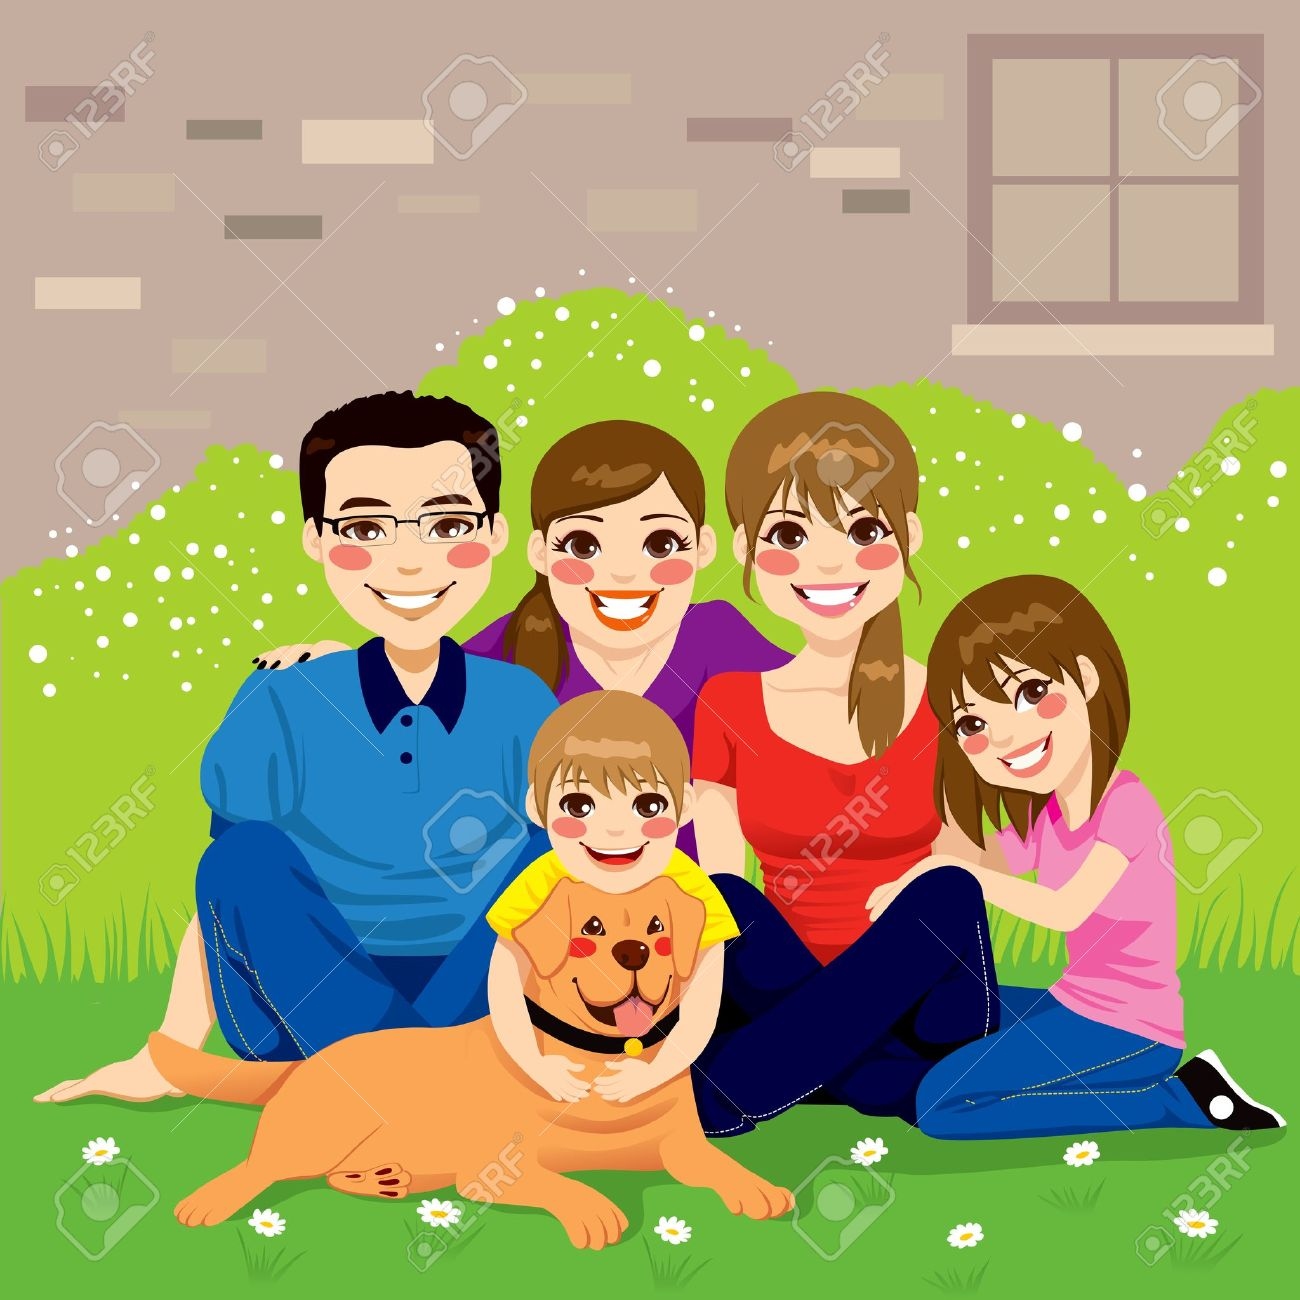 Sweet happy family posing together sitting in the backyard with their golden retriever dog Stock Vector - 20360298